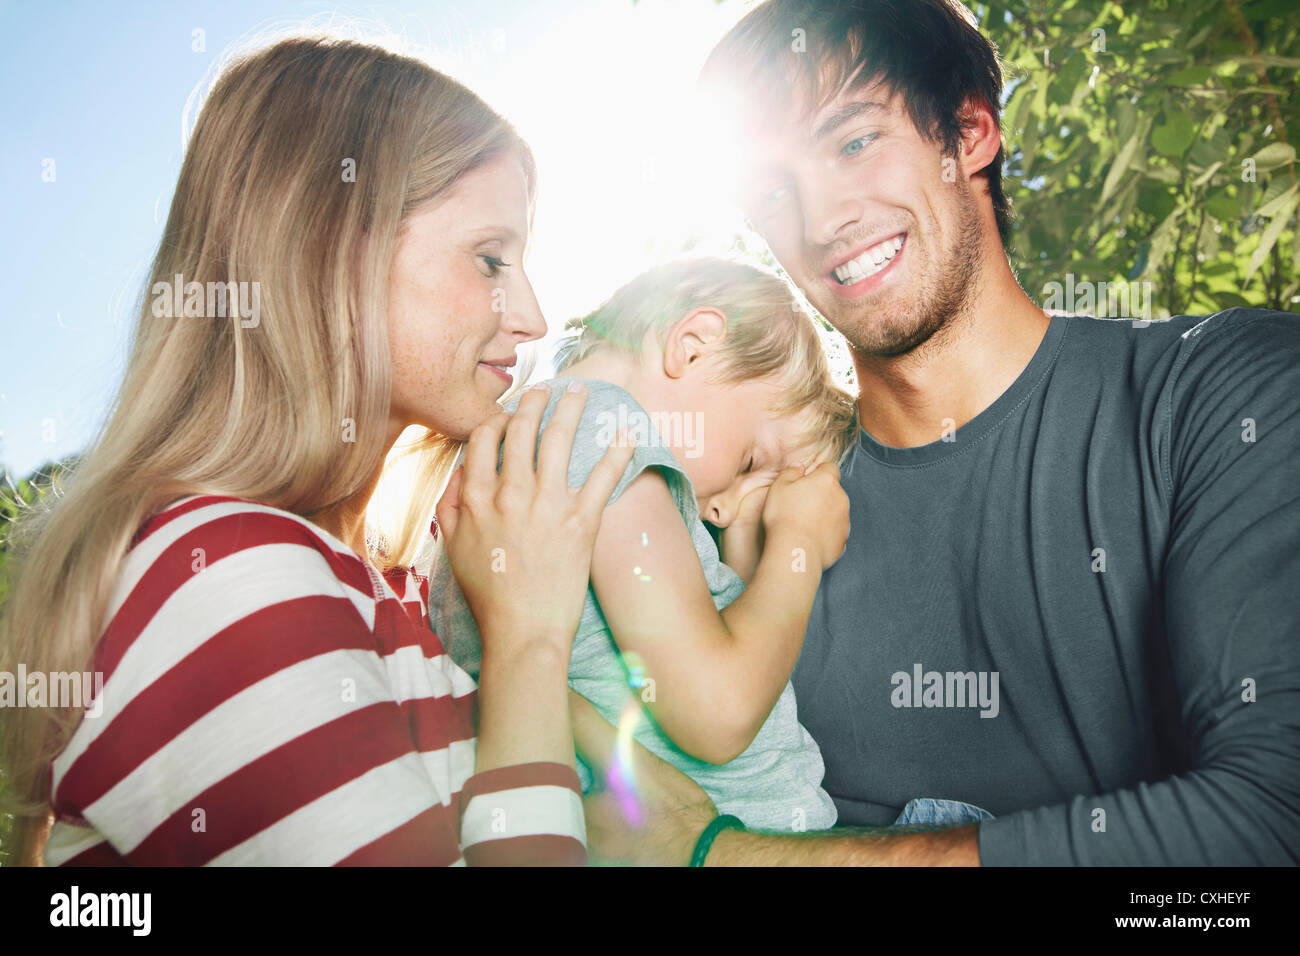 Germany, Cologne, Parents carrying tired son, close up - Stock Image